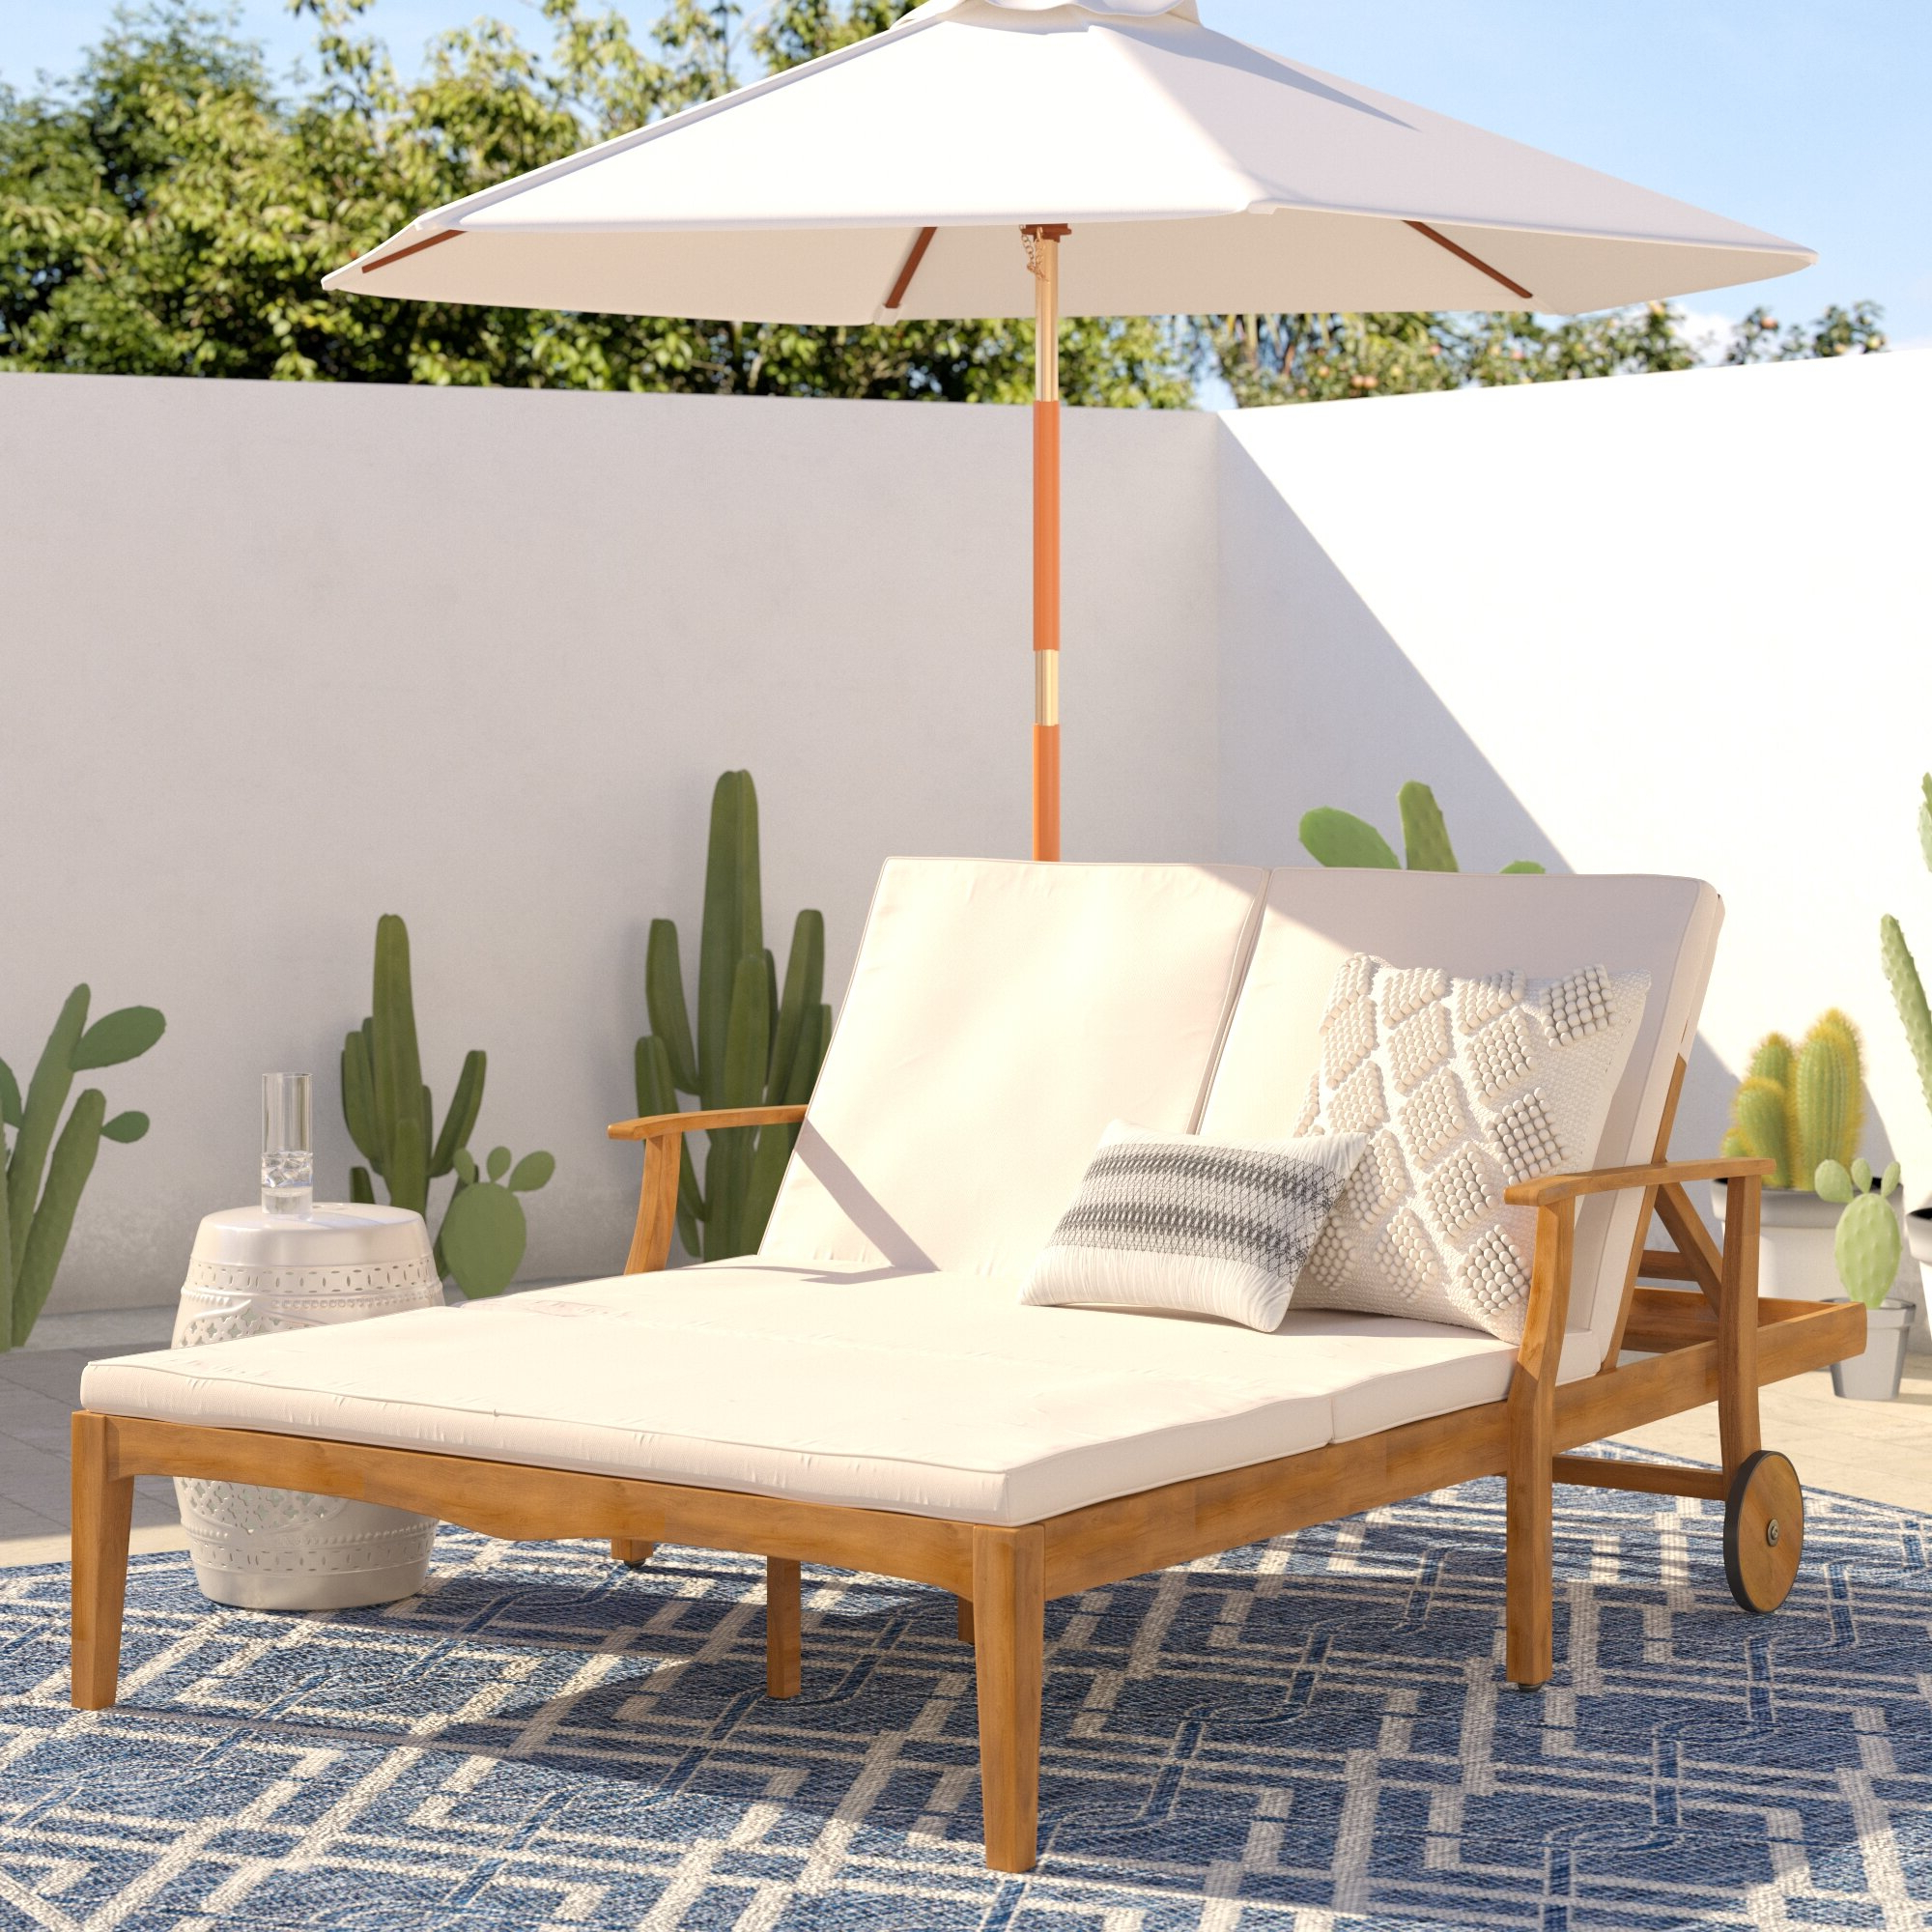 Antonia Double Reclining Teak Chaise Lounge With Cushion Regarding Most Popular Double Reclining Lounge Chairs With Canopy (View 16 of 25)